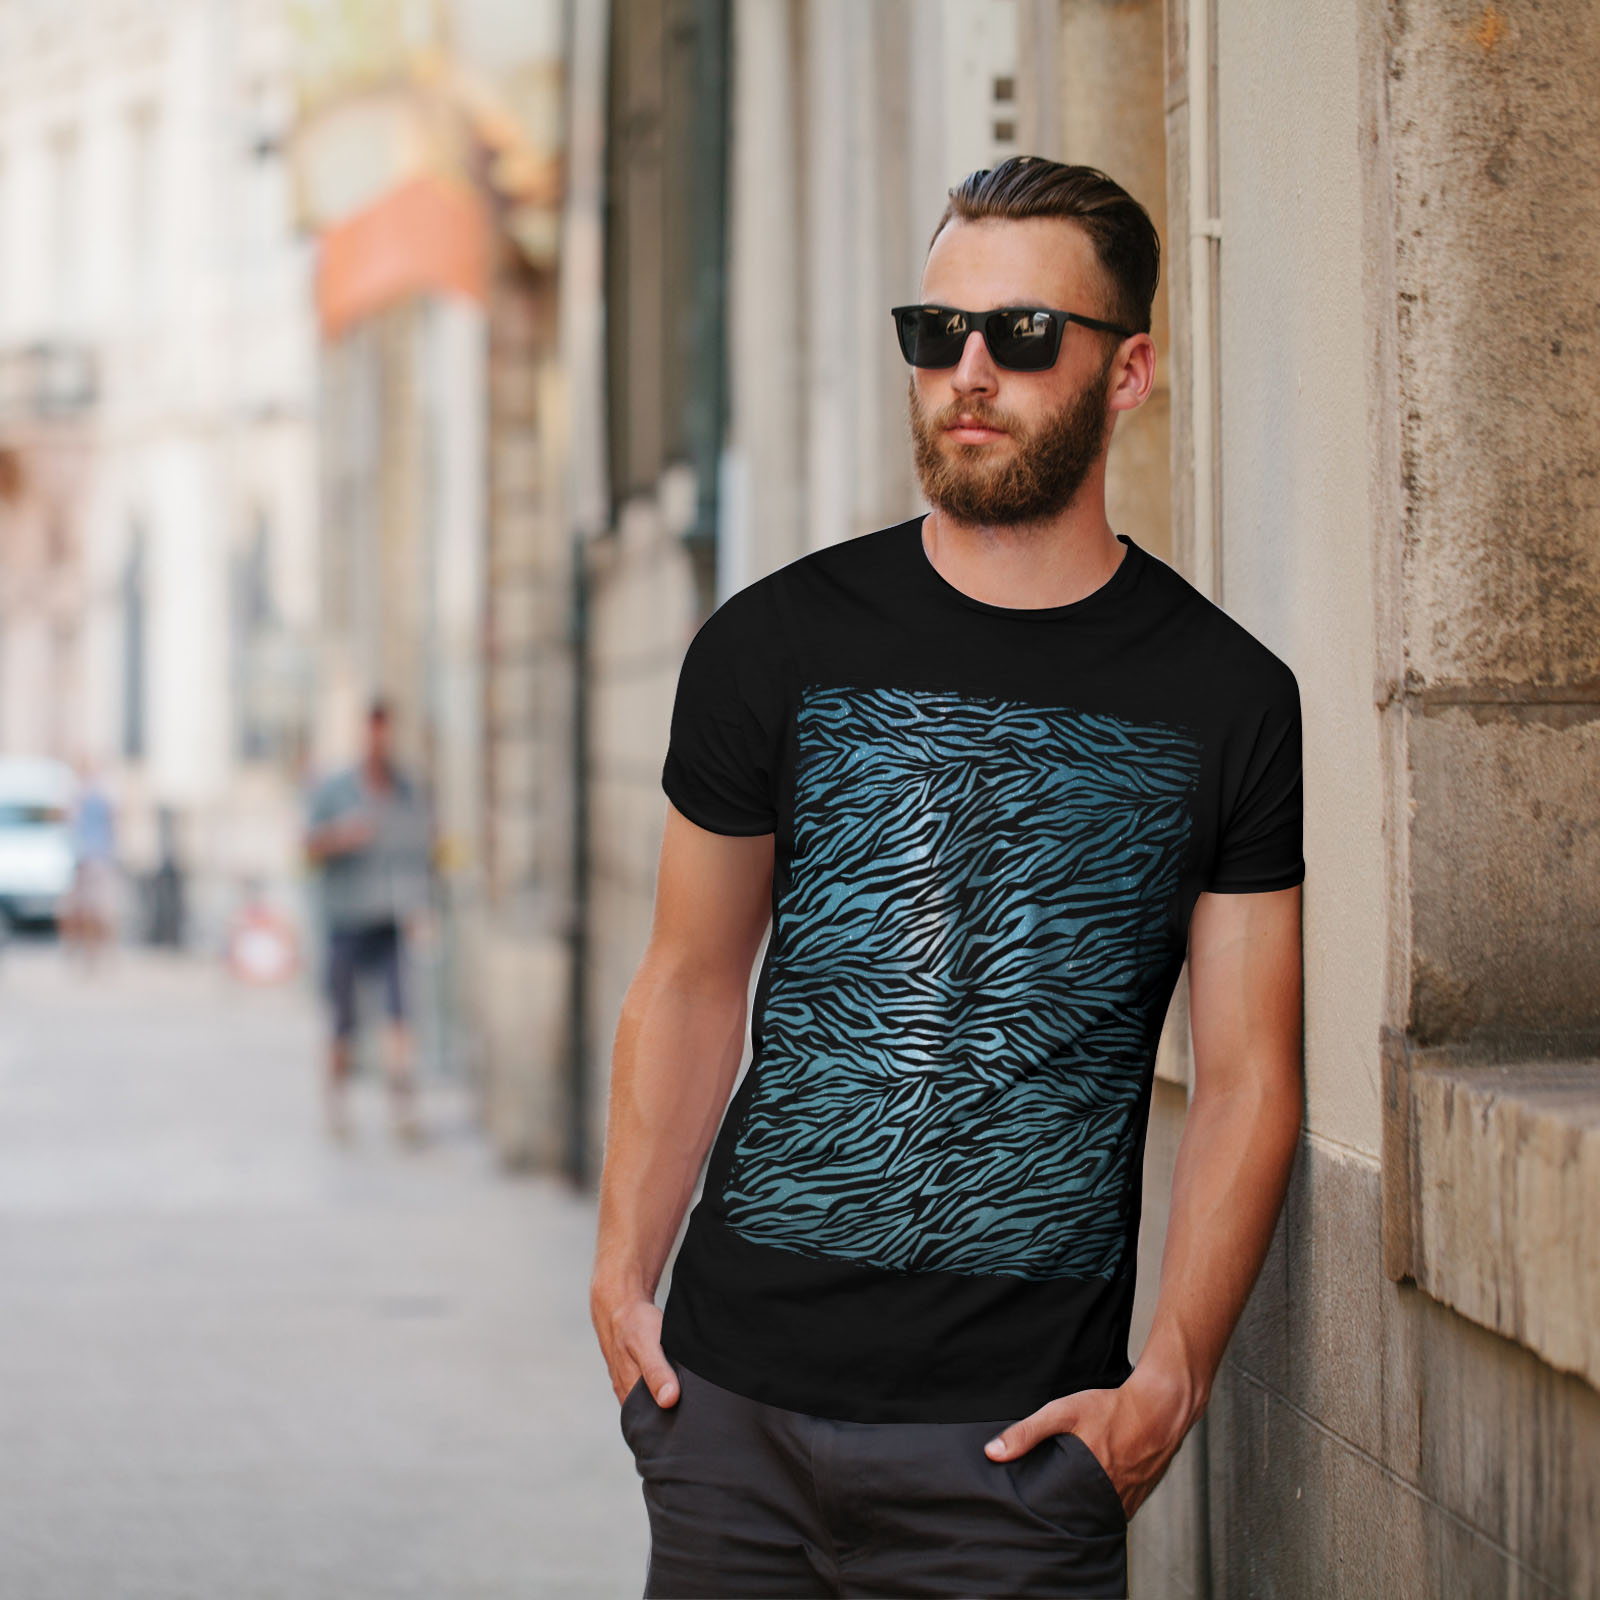 Wellcoda-Fashion-Pattern-Mens-T-shirt-Animal-Graphic-Design-Printed-Tee miniatuur 5